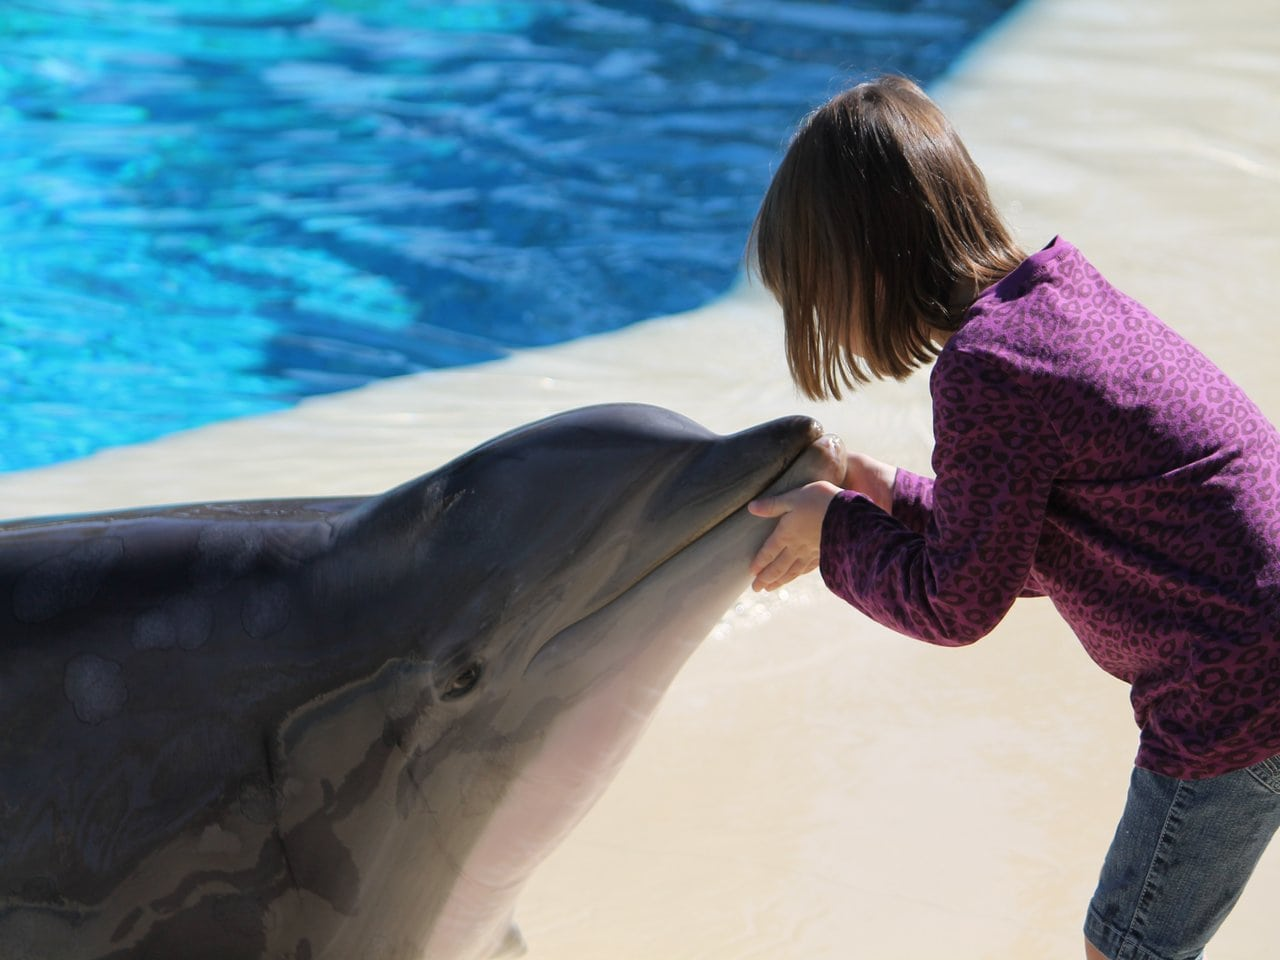 dolphin outside water with a girl